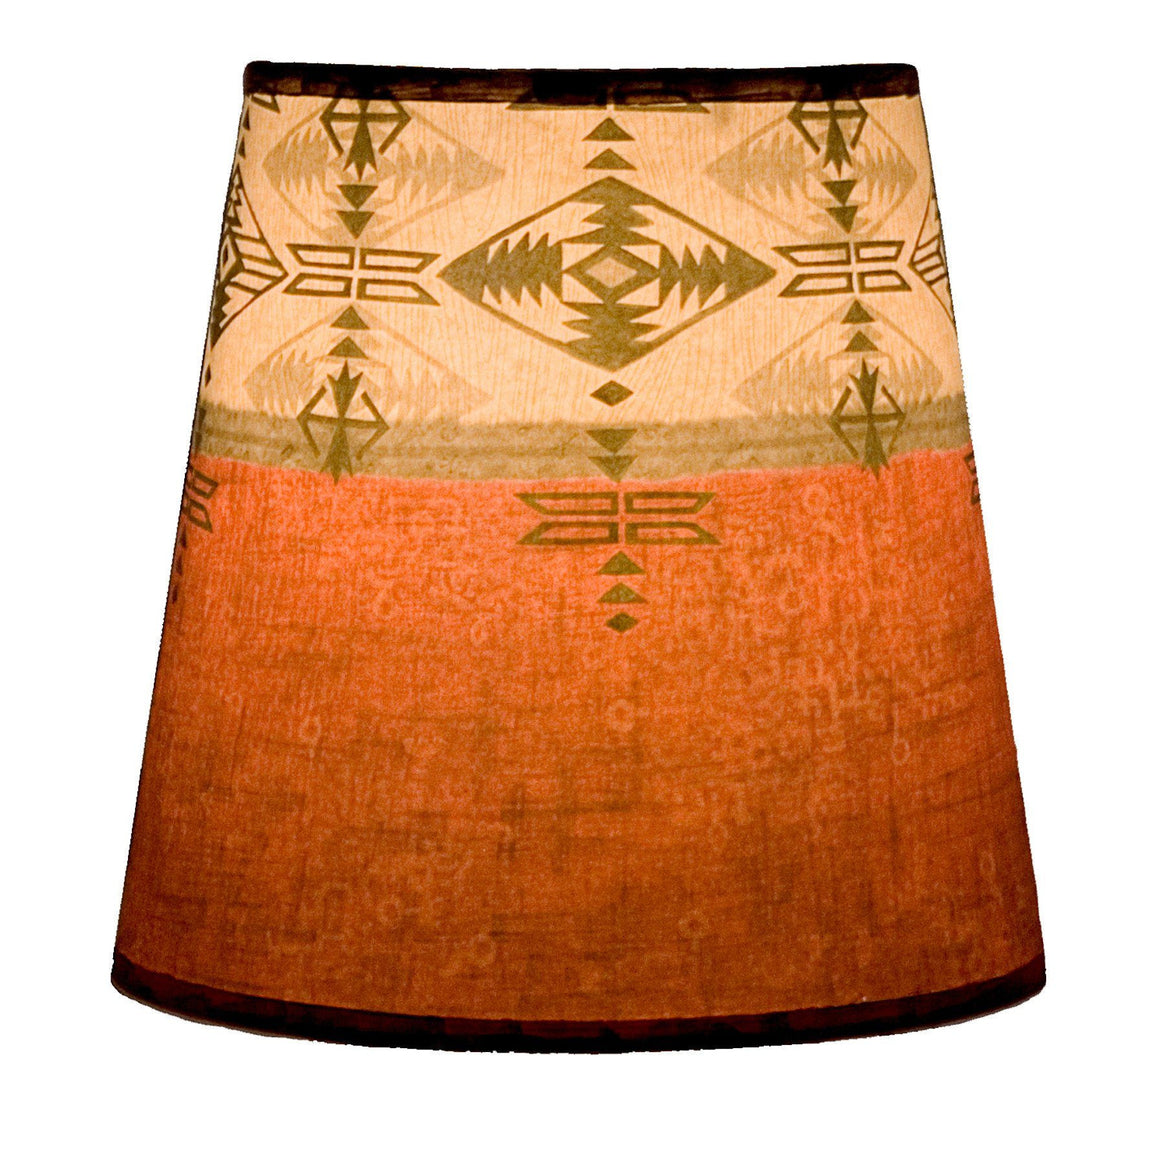 Small Drum Lamp Shade in Mesa